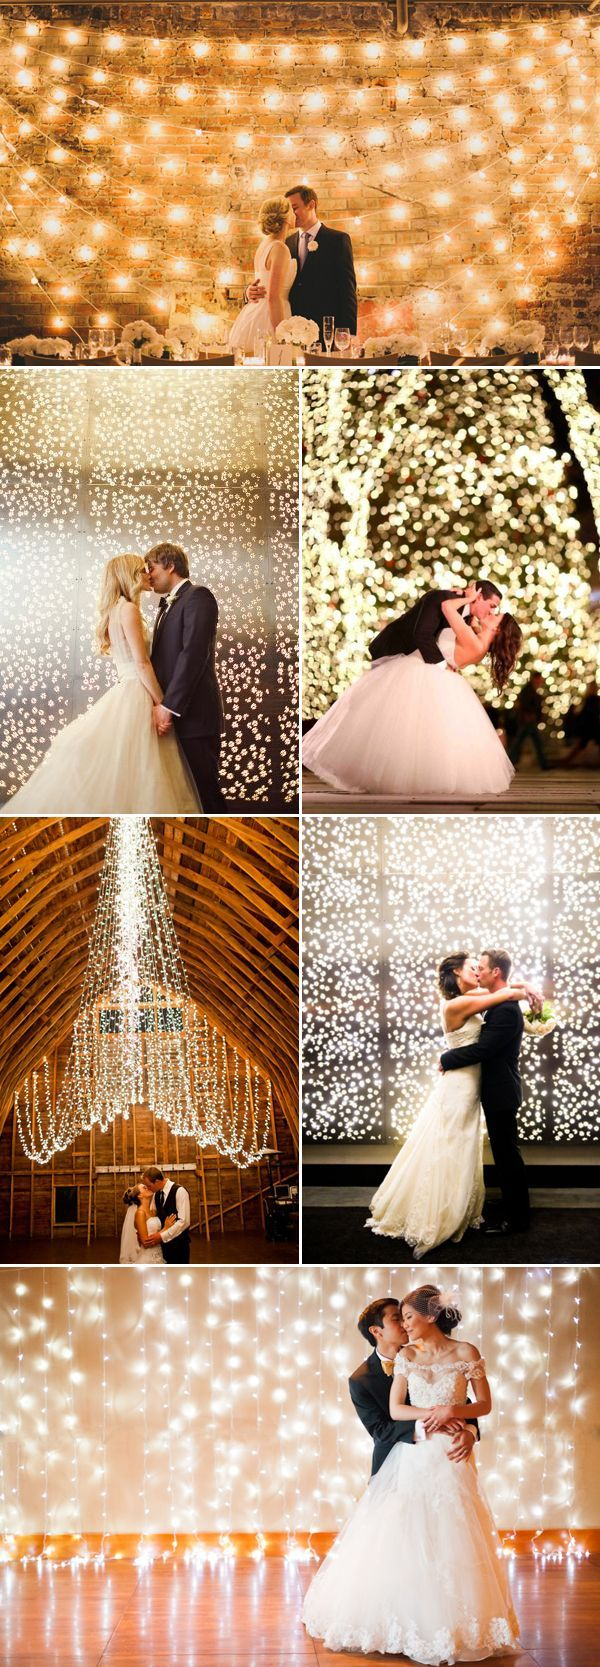 Lights  Hanging for and Lights Backdrops Wedding shoes shipping Ceremony Unique free with    Ideas Backdrops   Top wholesale